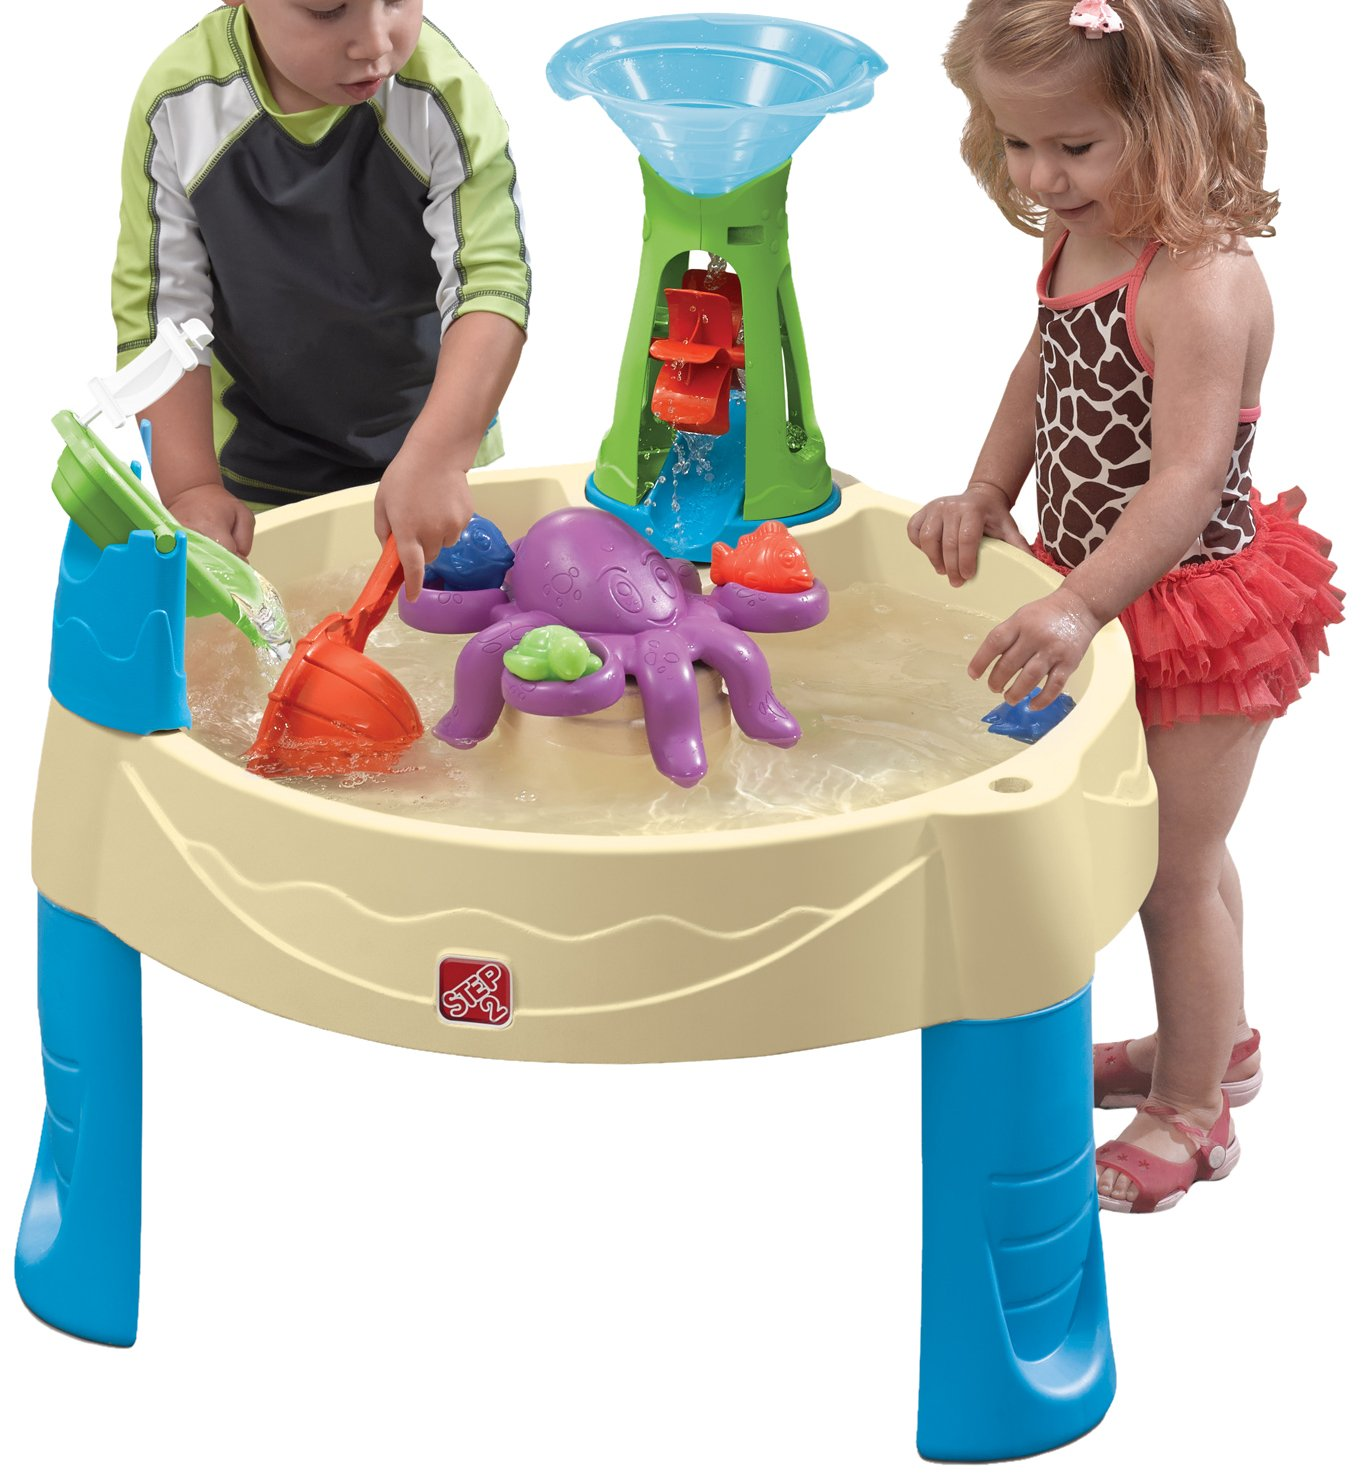 Amazon Step2 Wild Whirlpool Water Table Toys & Games